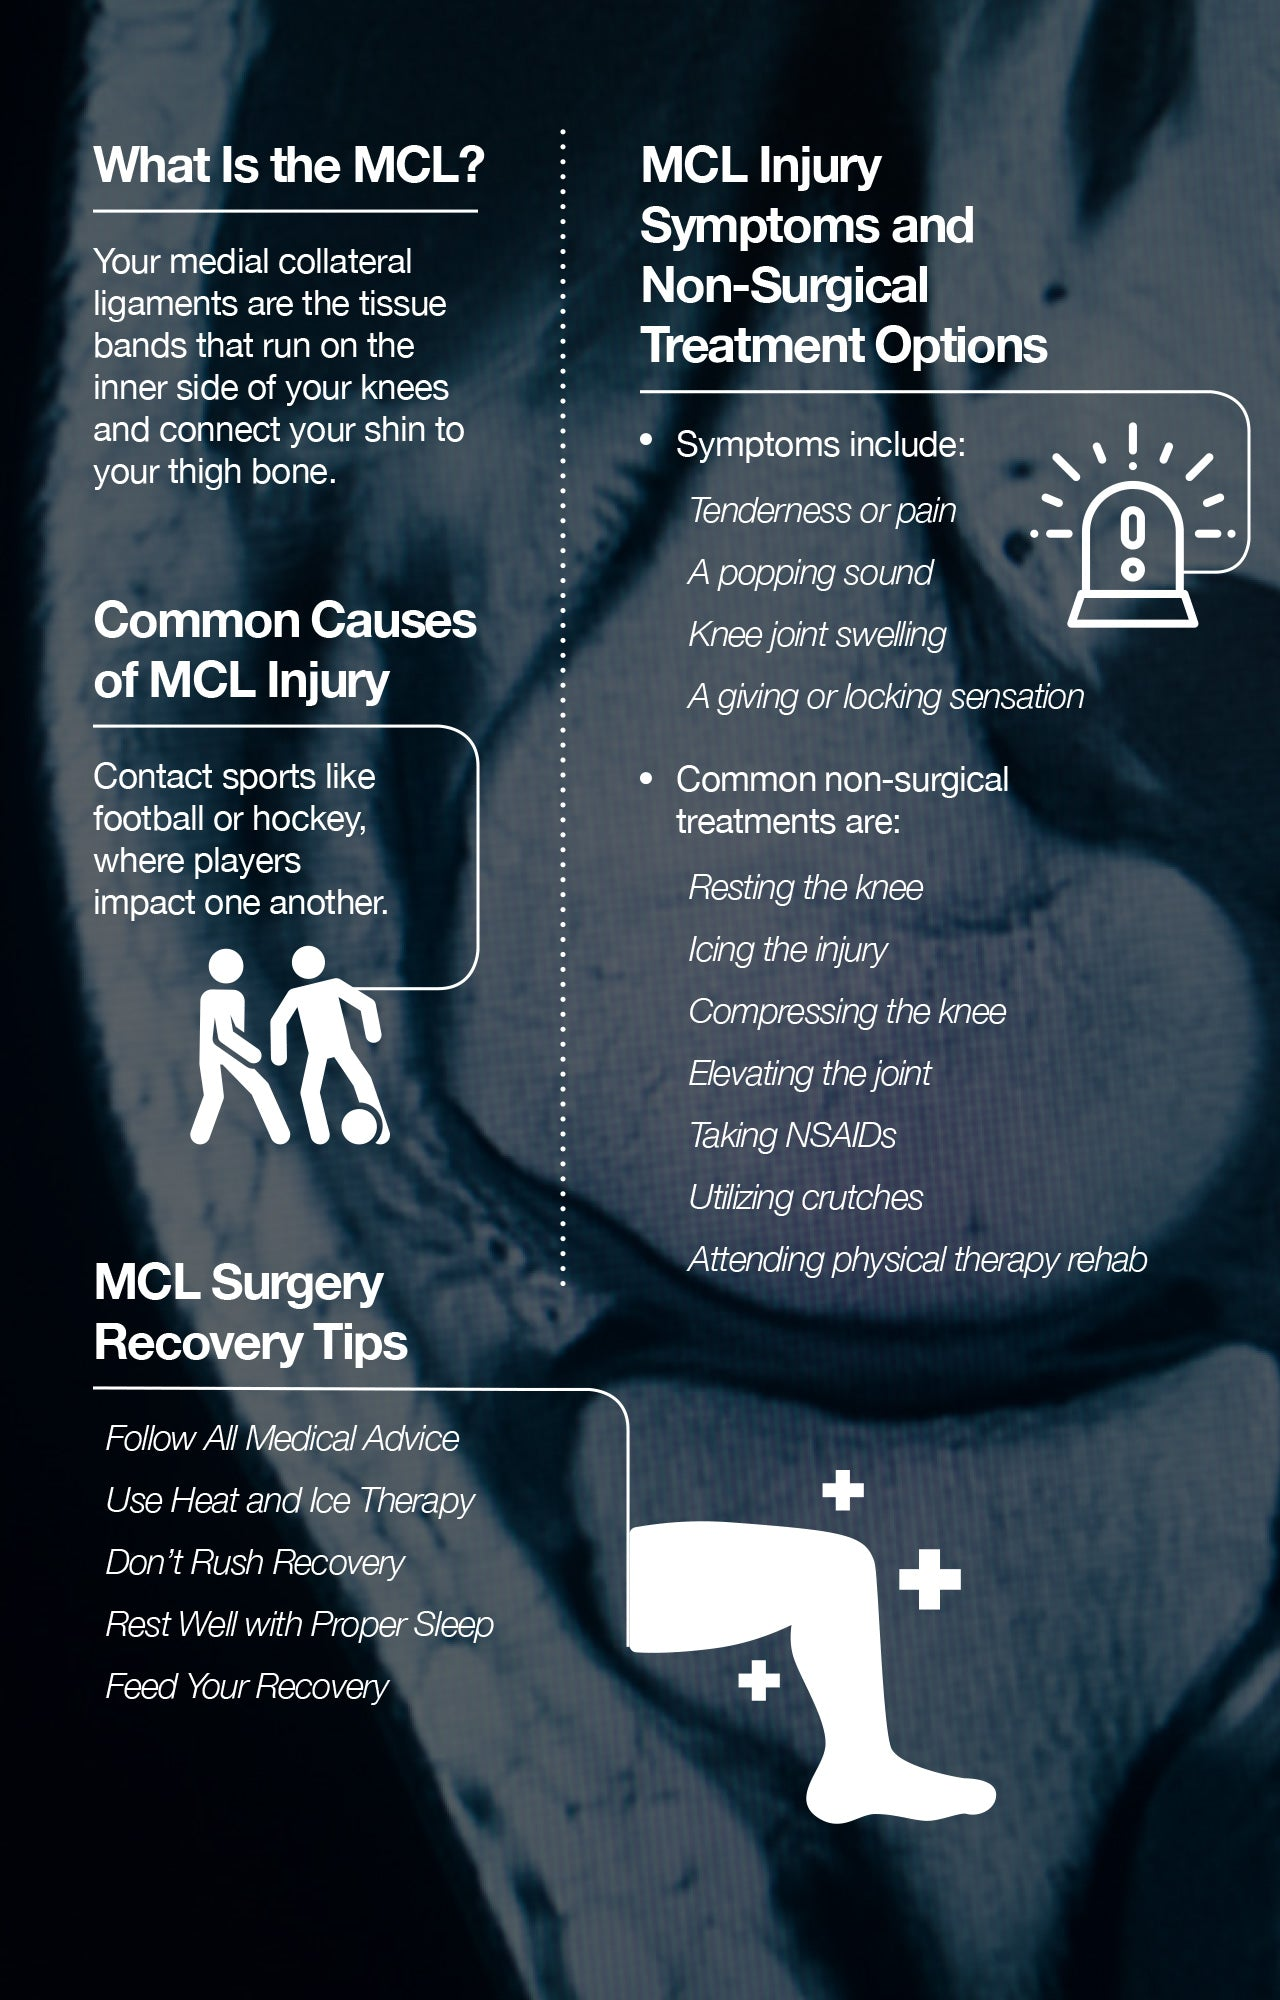 How to speed up MCL surgery recovery.